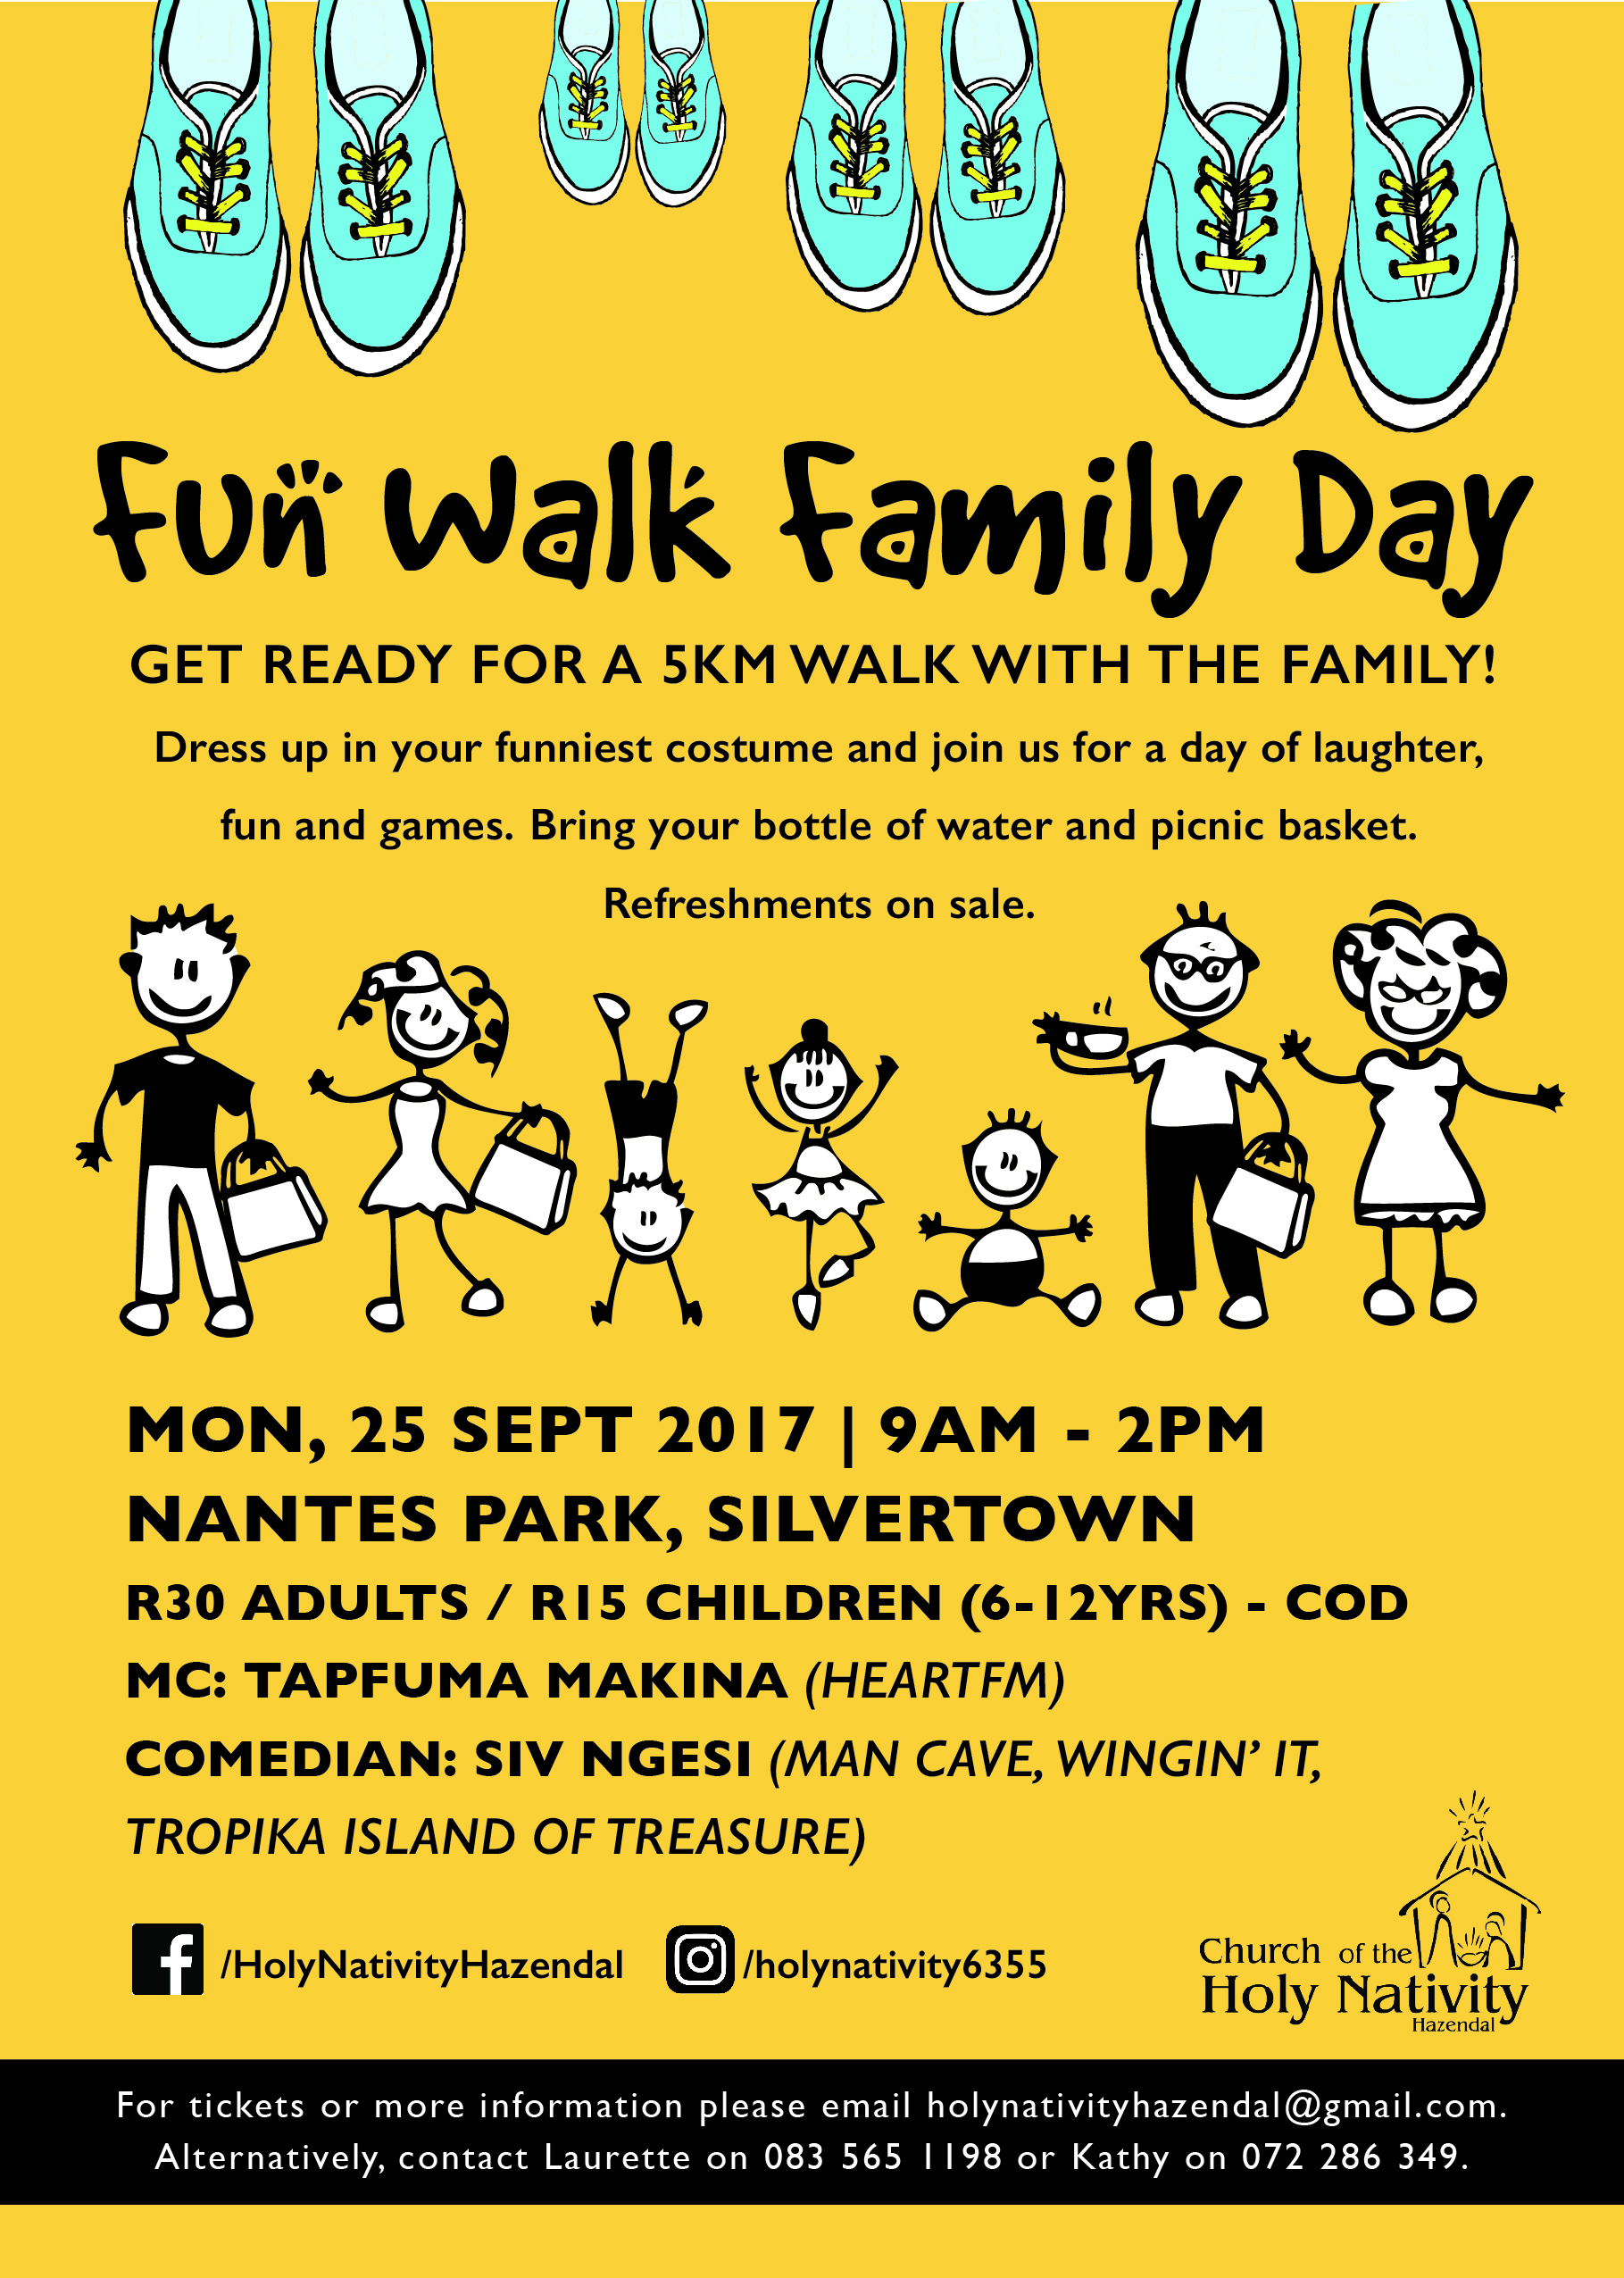 Fun Walk Family Day